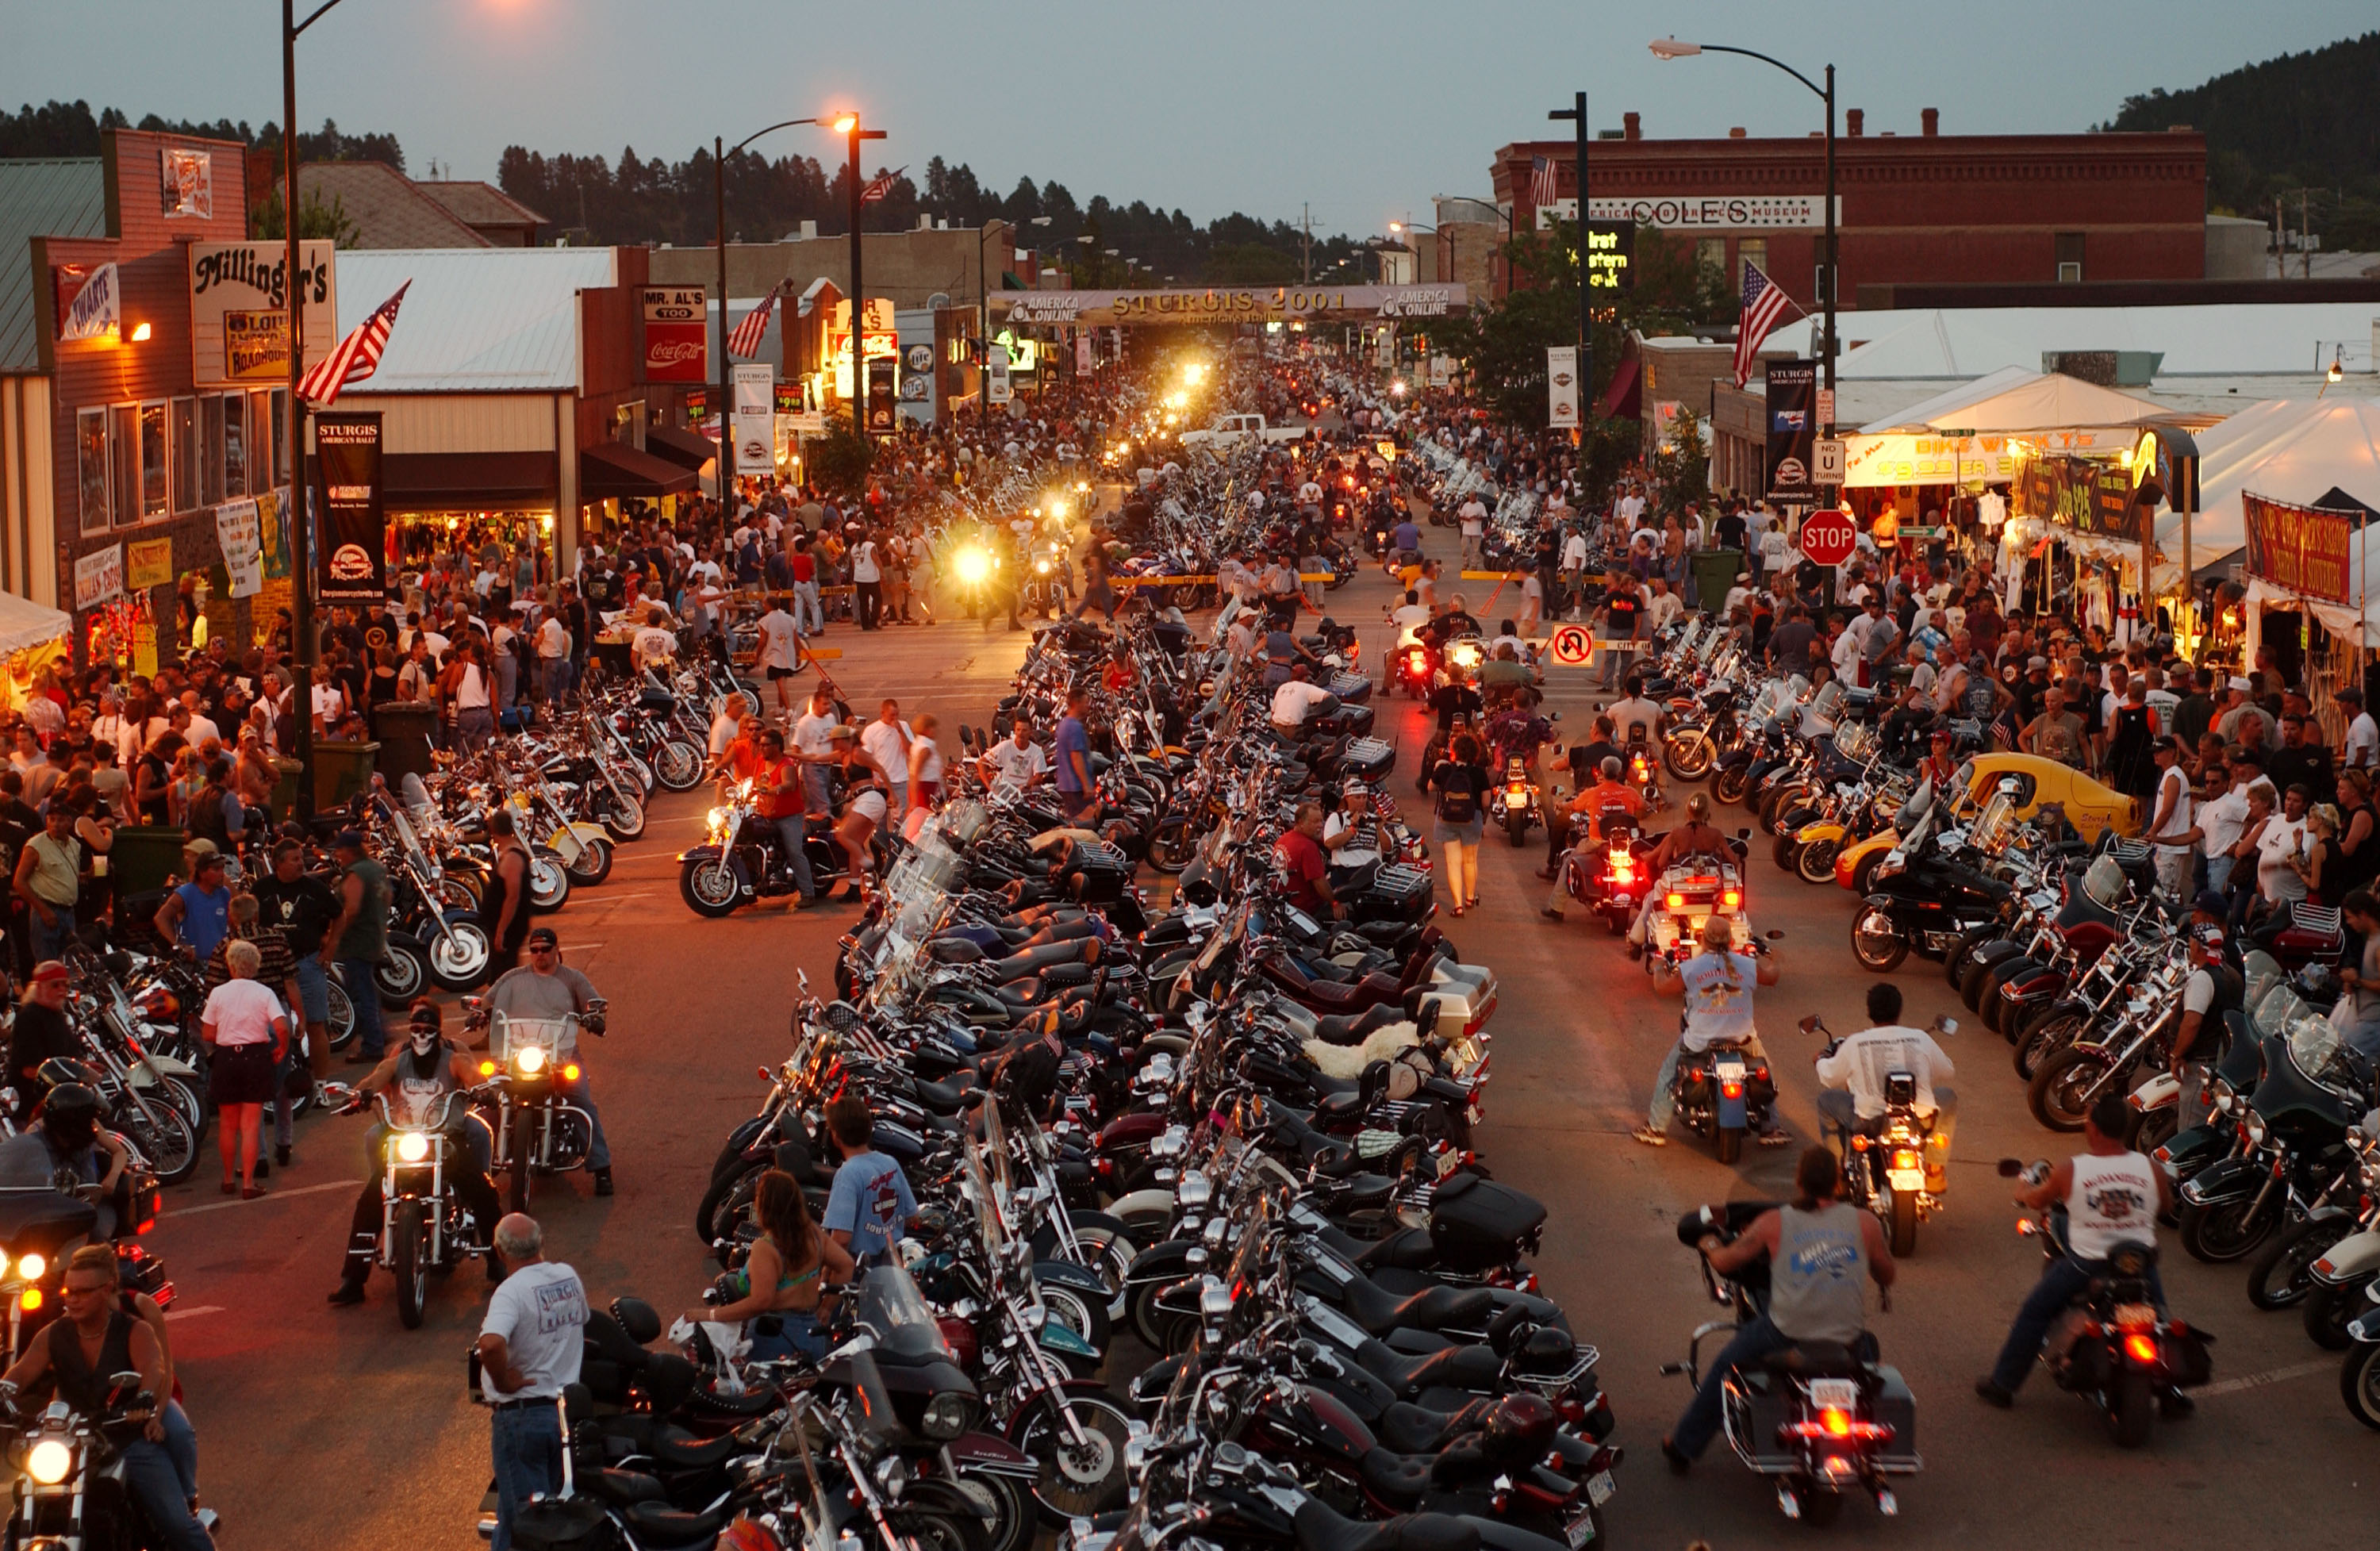 Thousands of motorcycles fill Main Street in Sturgis, South Dakota.